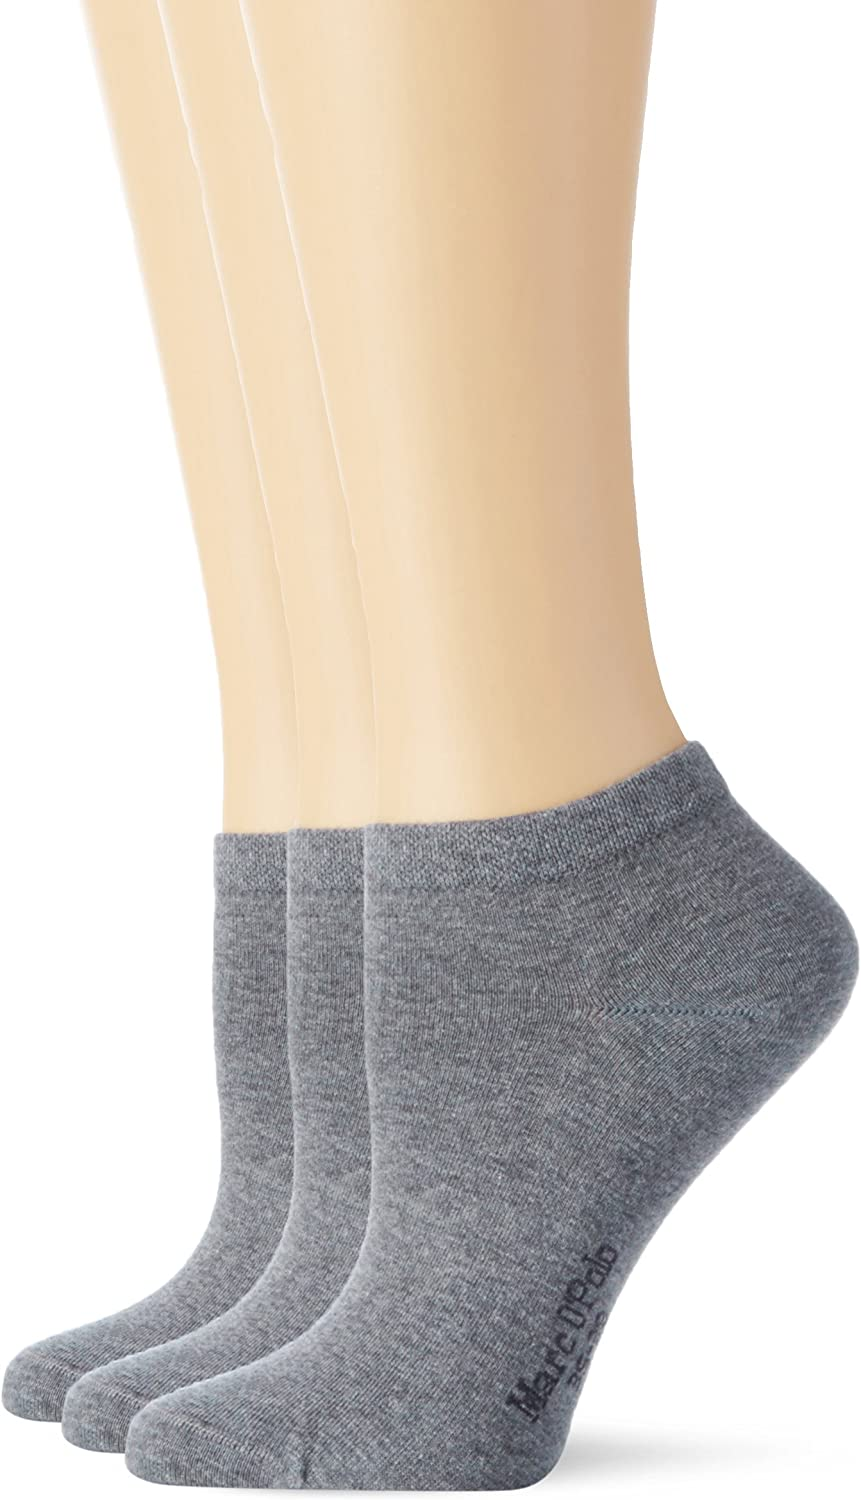 Marc OPolo Calcetines para Mujer Pack de 3